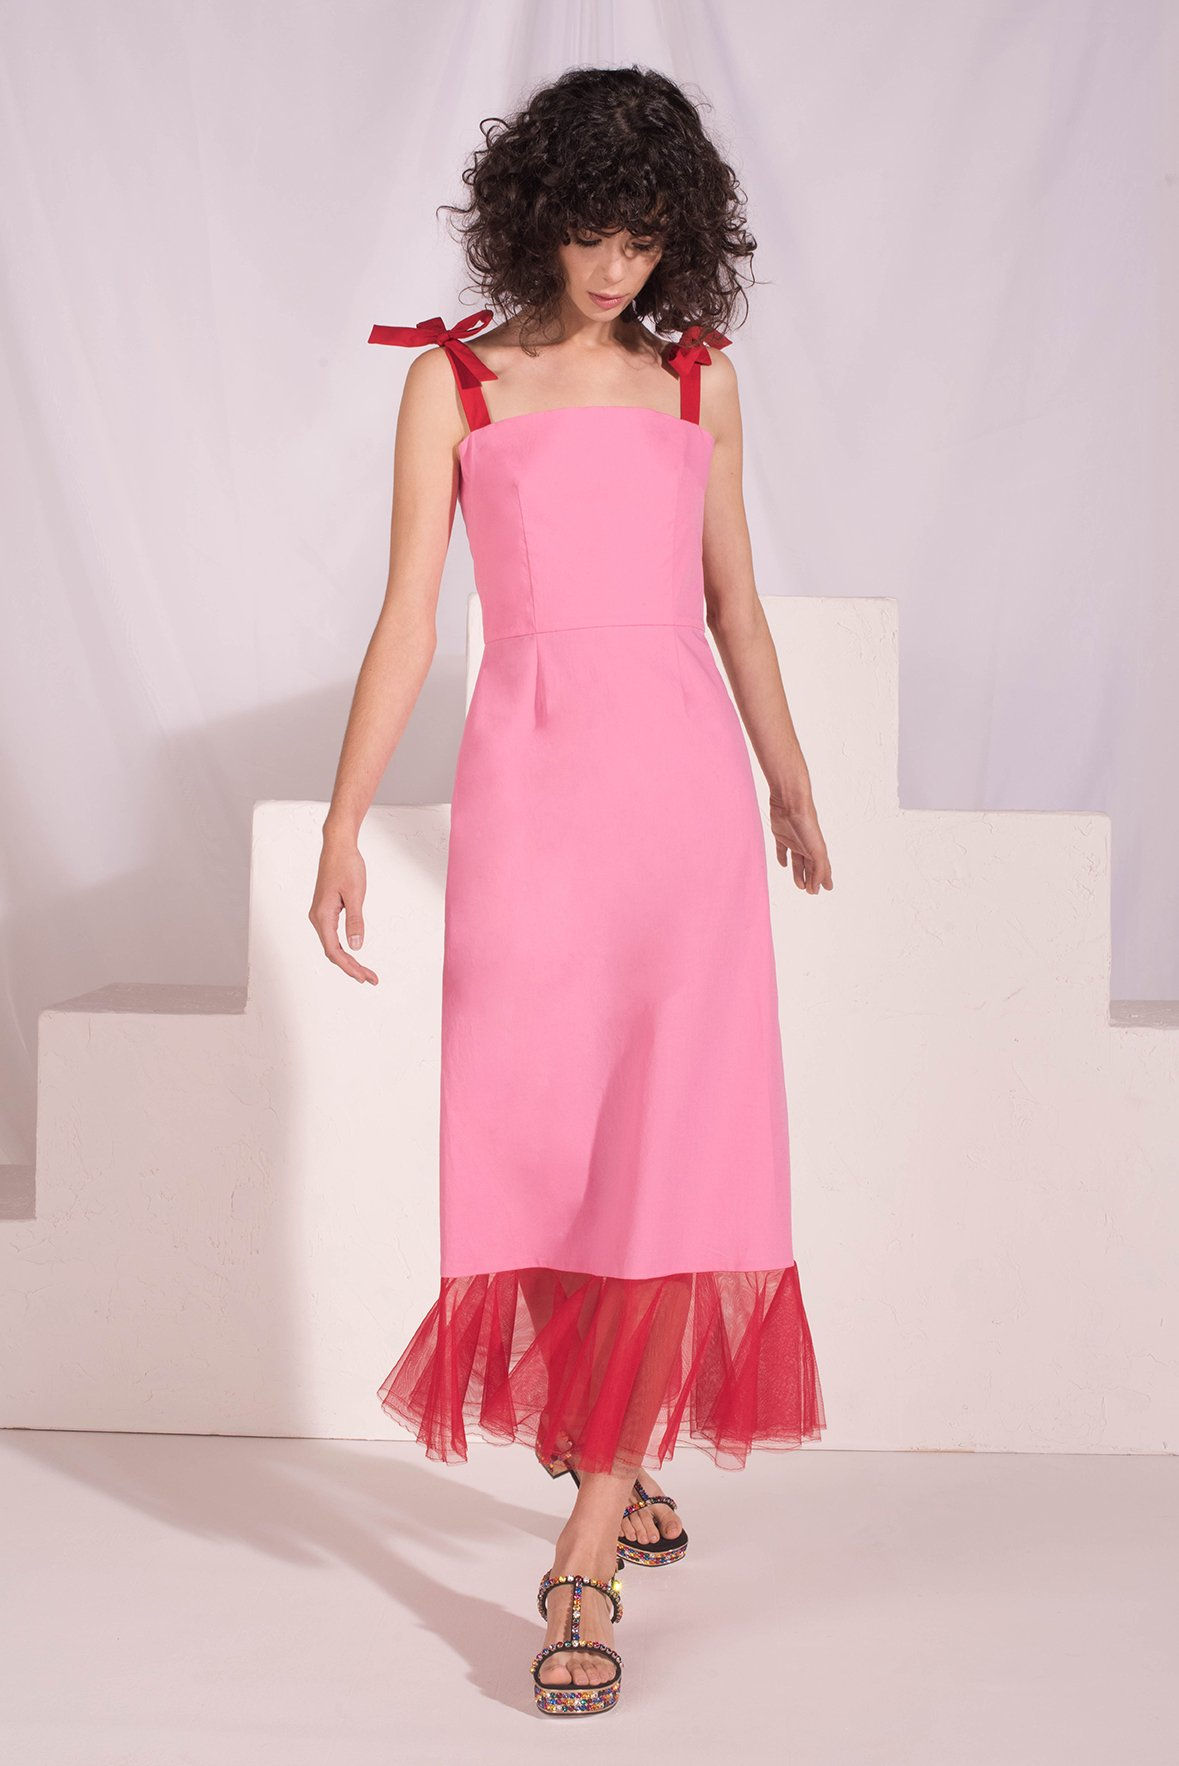 pink and red mini engagement party dress